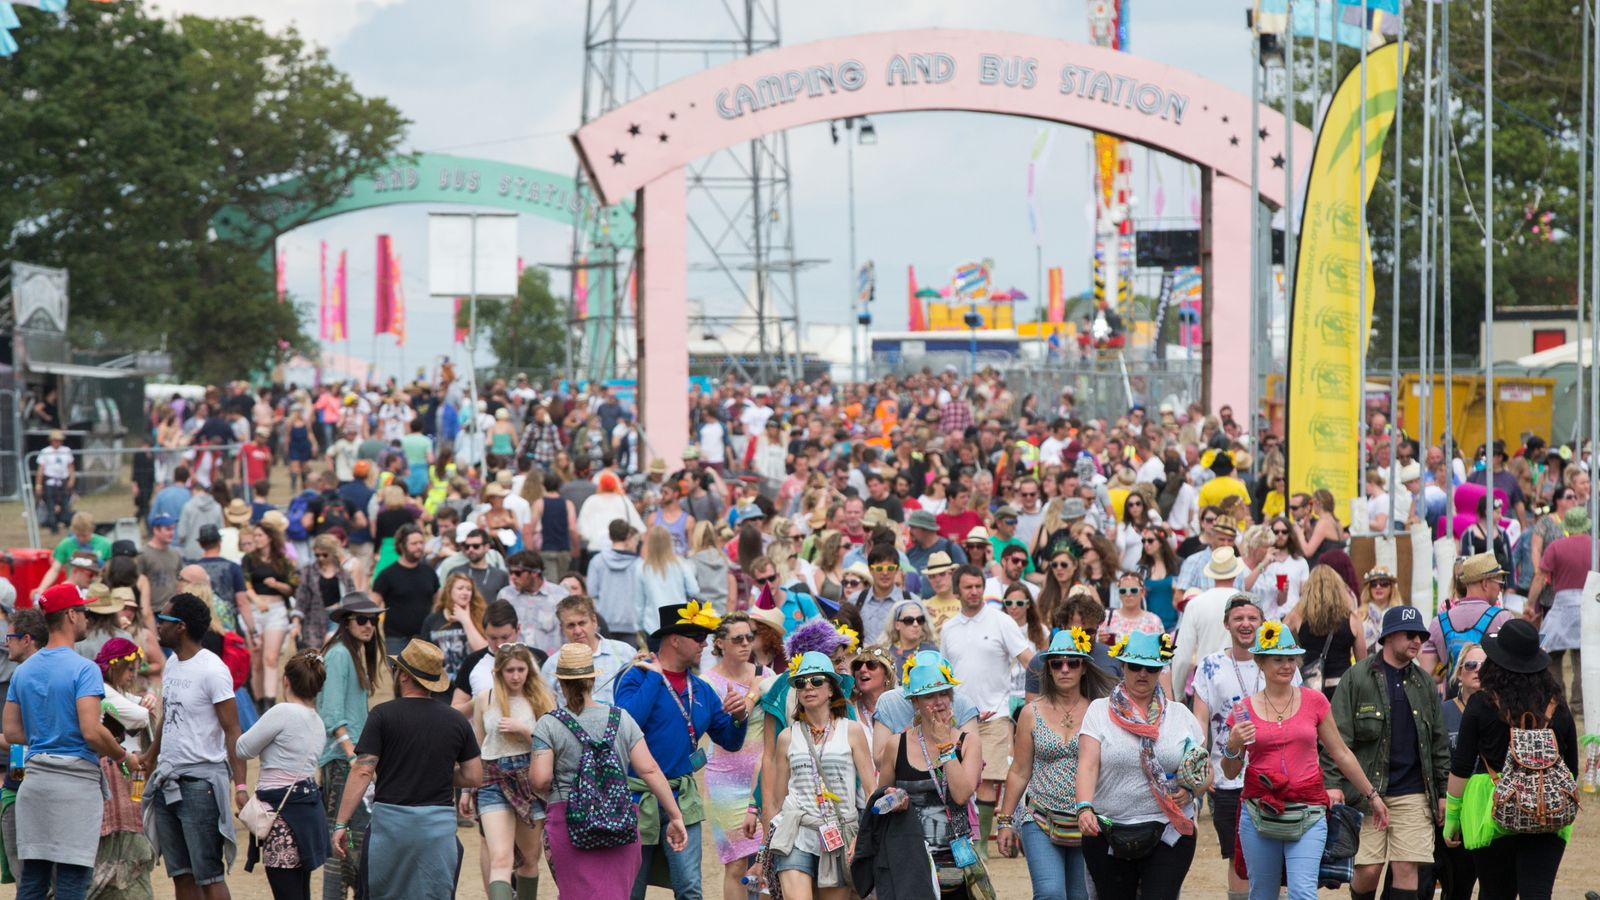 Isle Of Wight Festival confirms it will go ahead - but moves from June to September after lockdown roadmap announcement